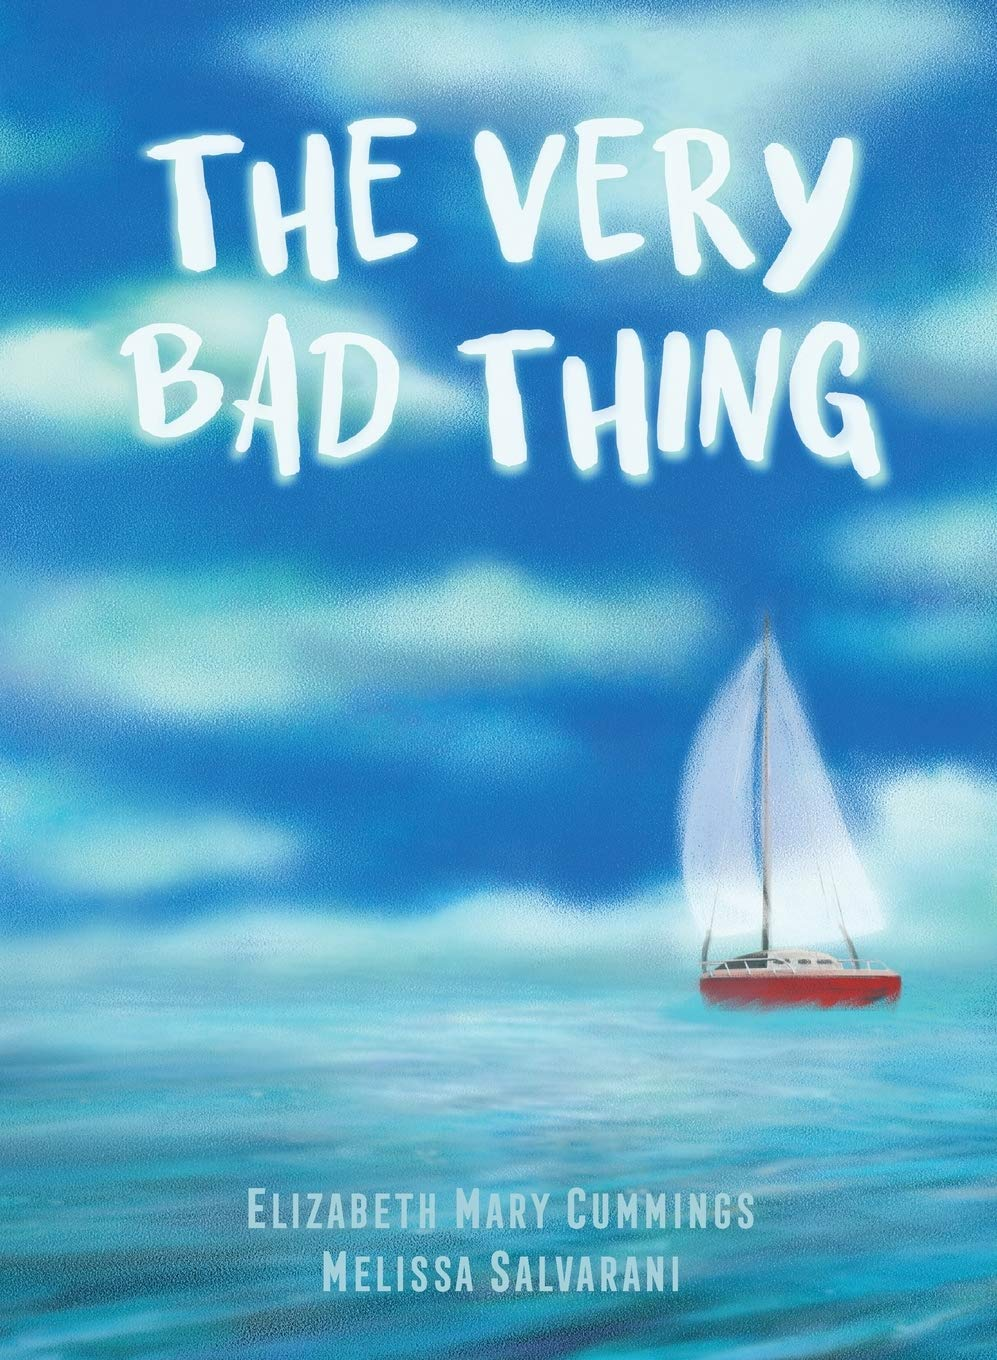 Front Cover of children's book A Very Bad Thing